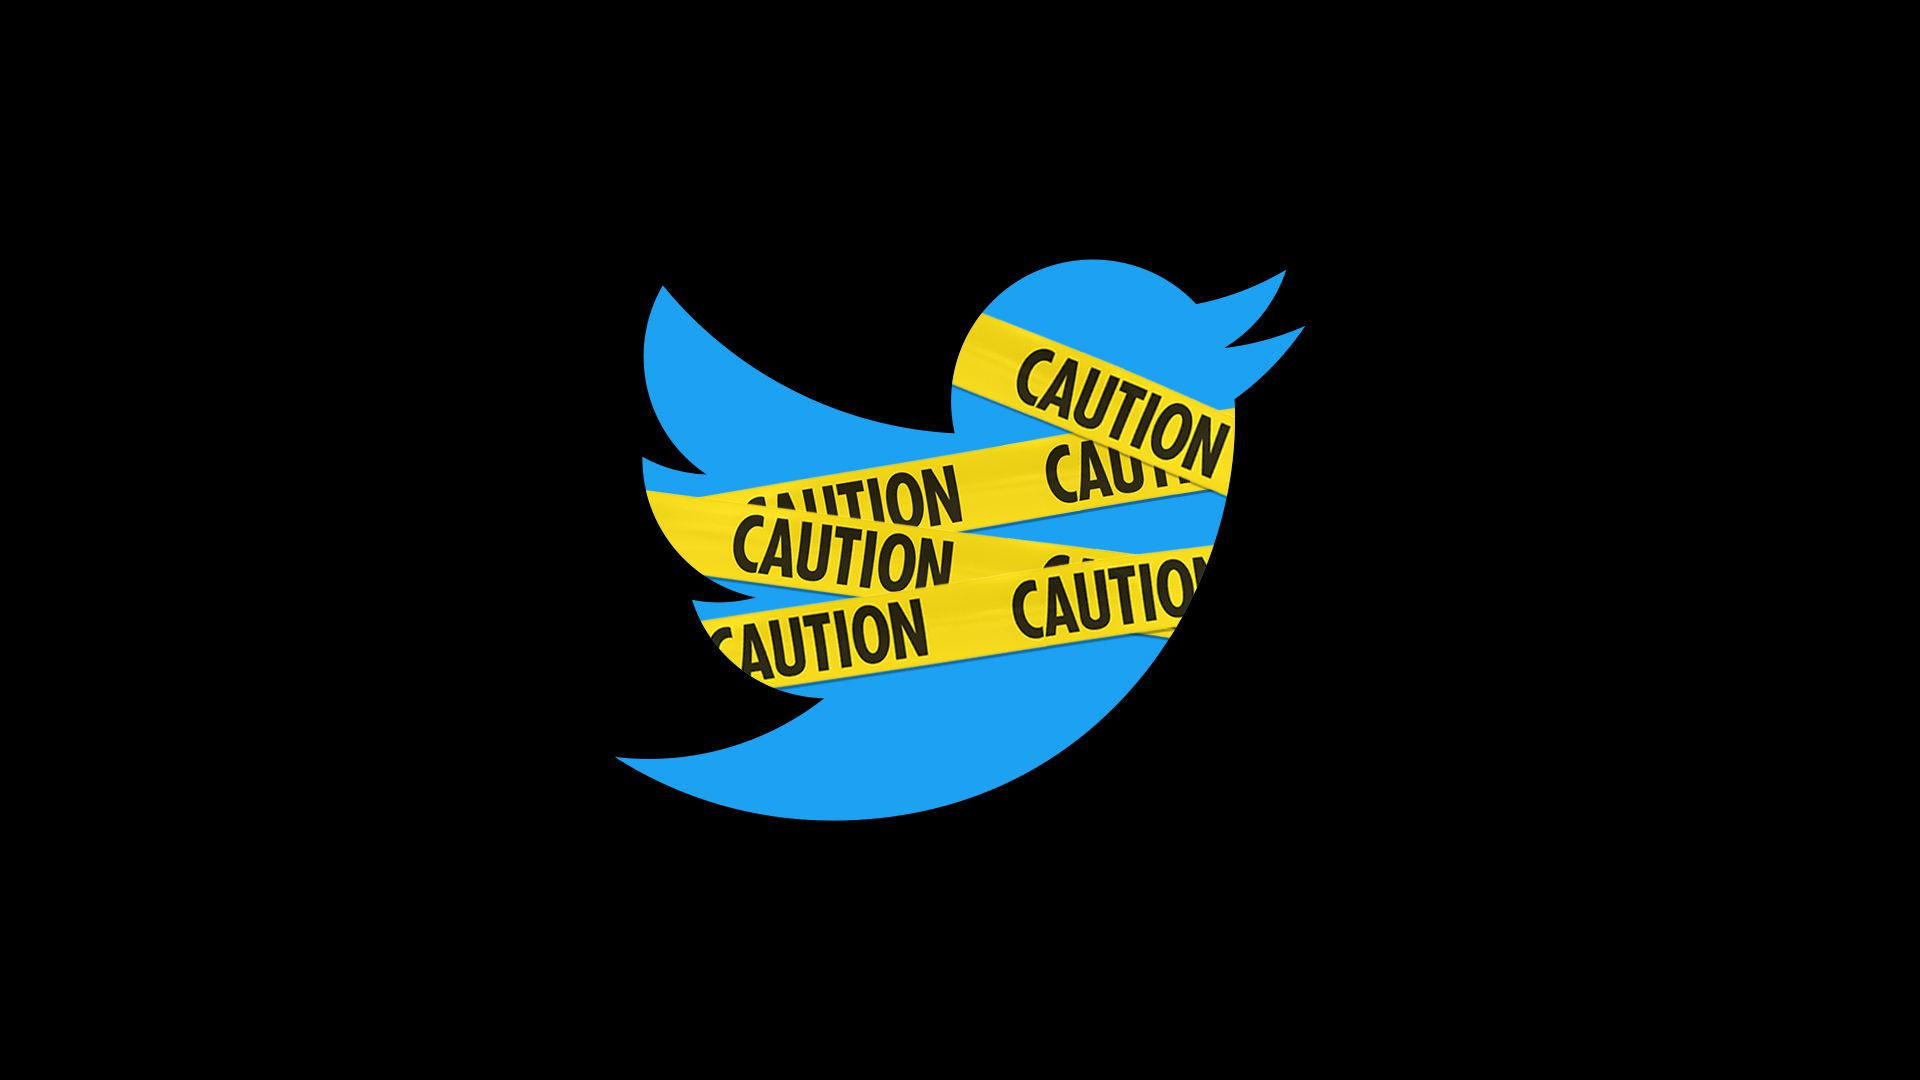 Illustration of twitter logo wrapped in caution tape